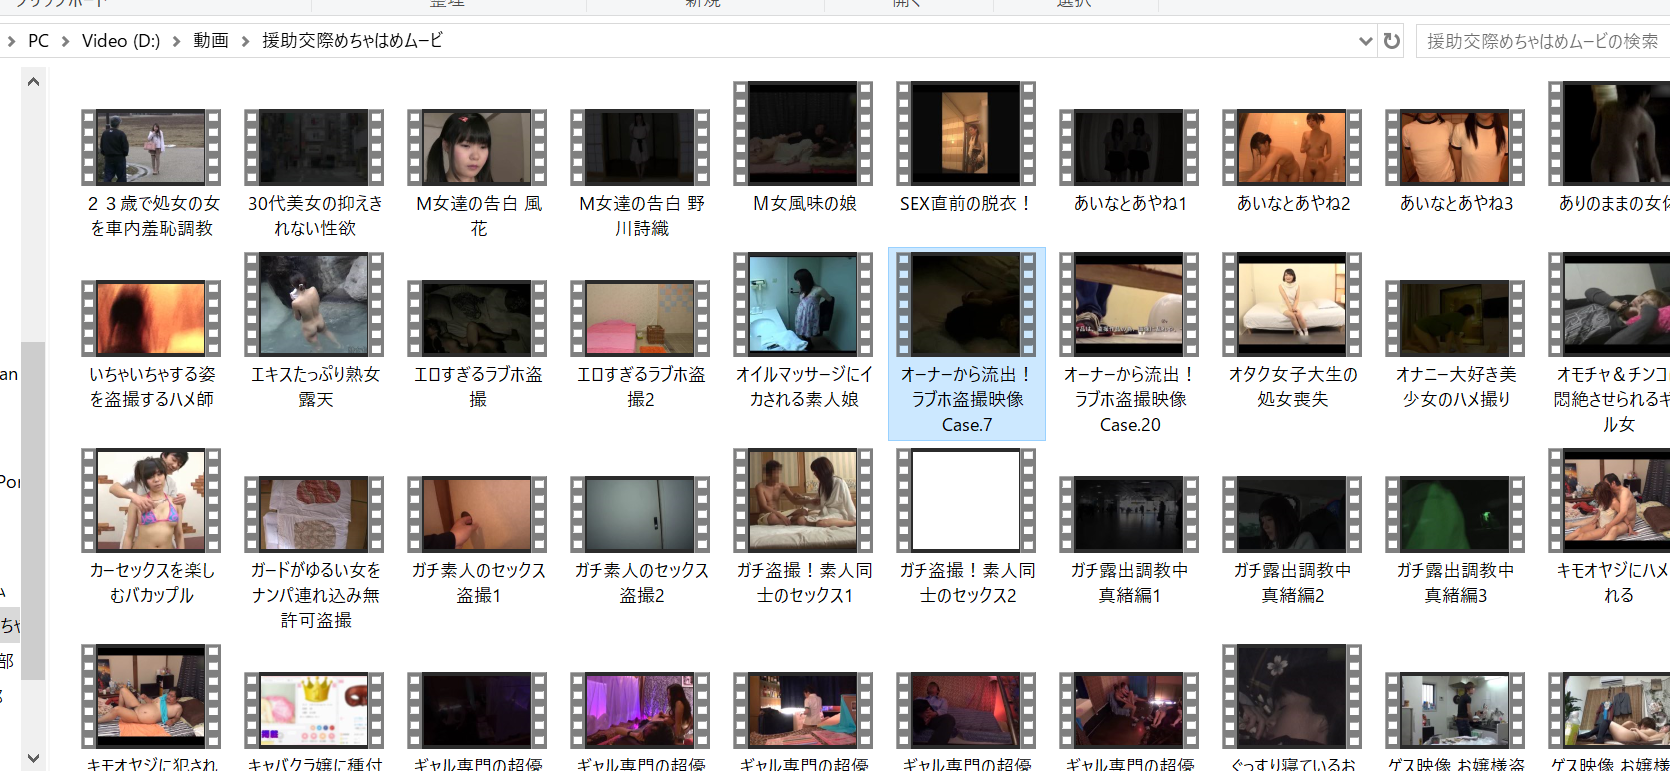 some of the uncensored JAV erotic videos I downloaded